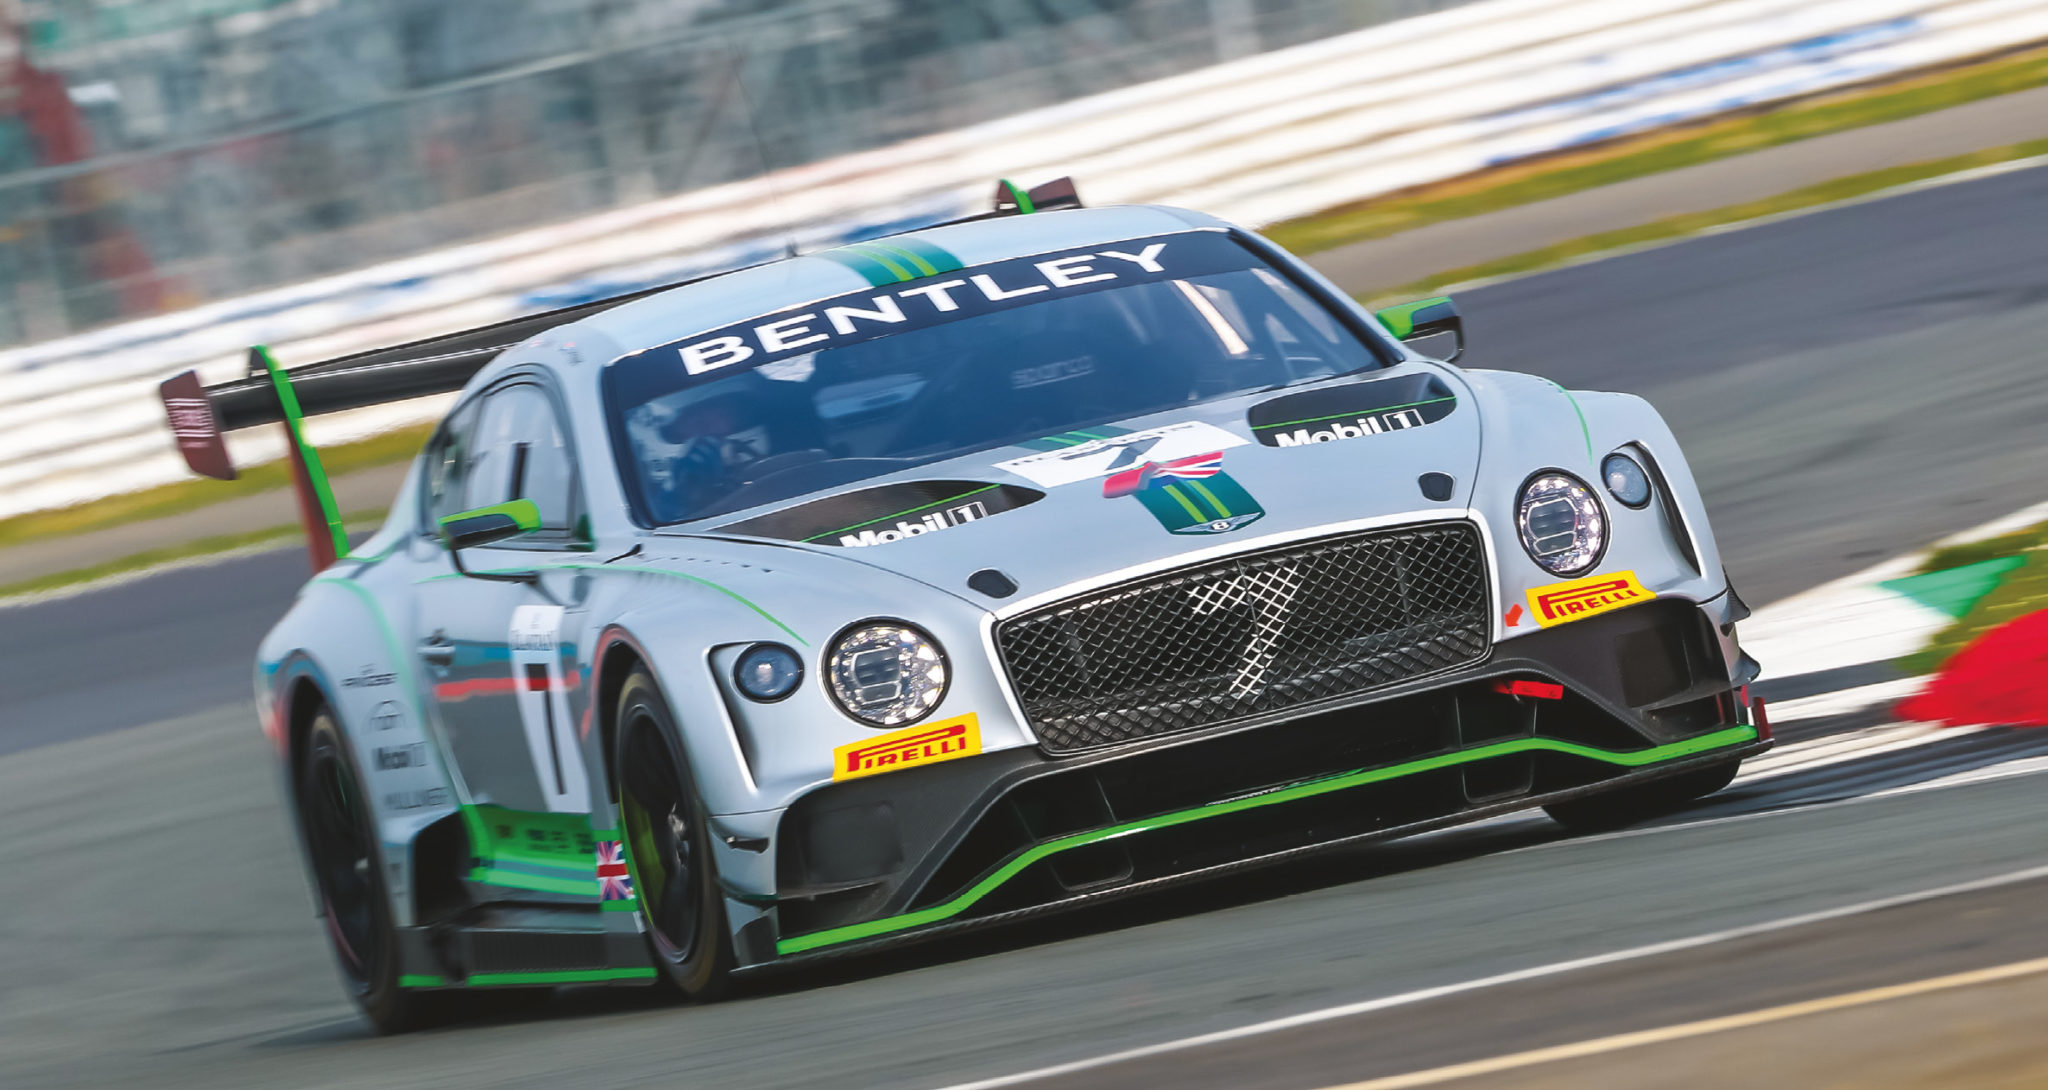 Featuring a lighter chassis and better dynamics, the new Continental GT3 is a significant step up over the original car